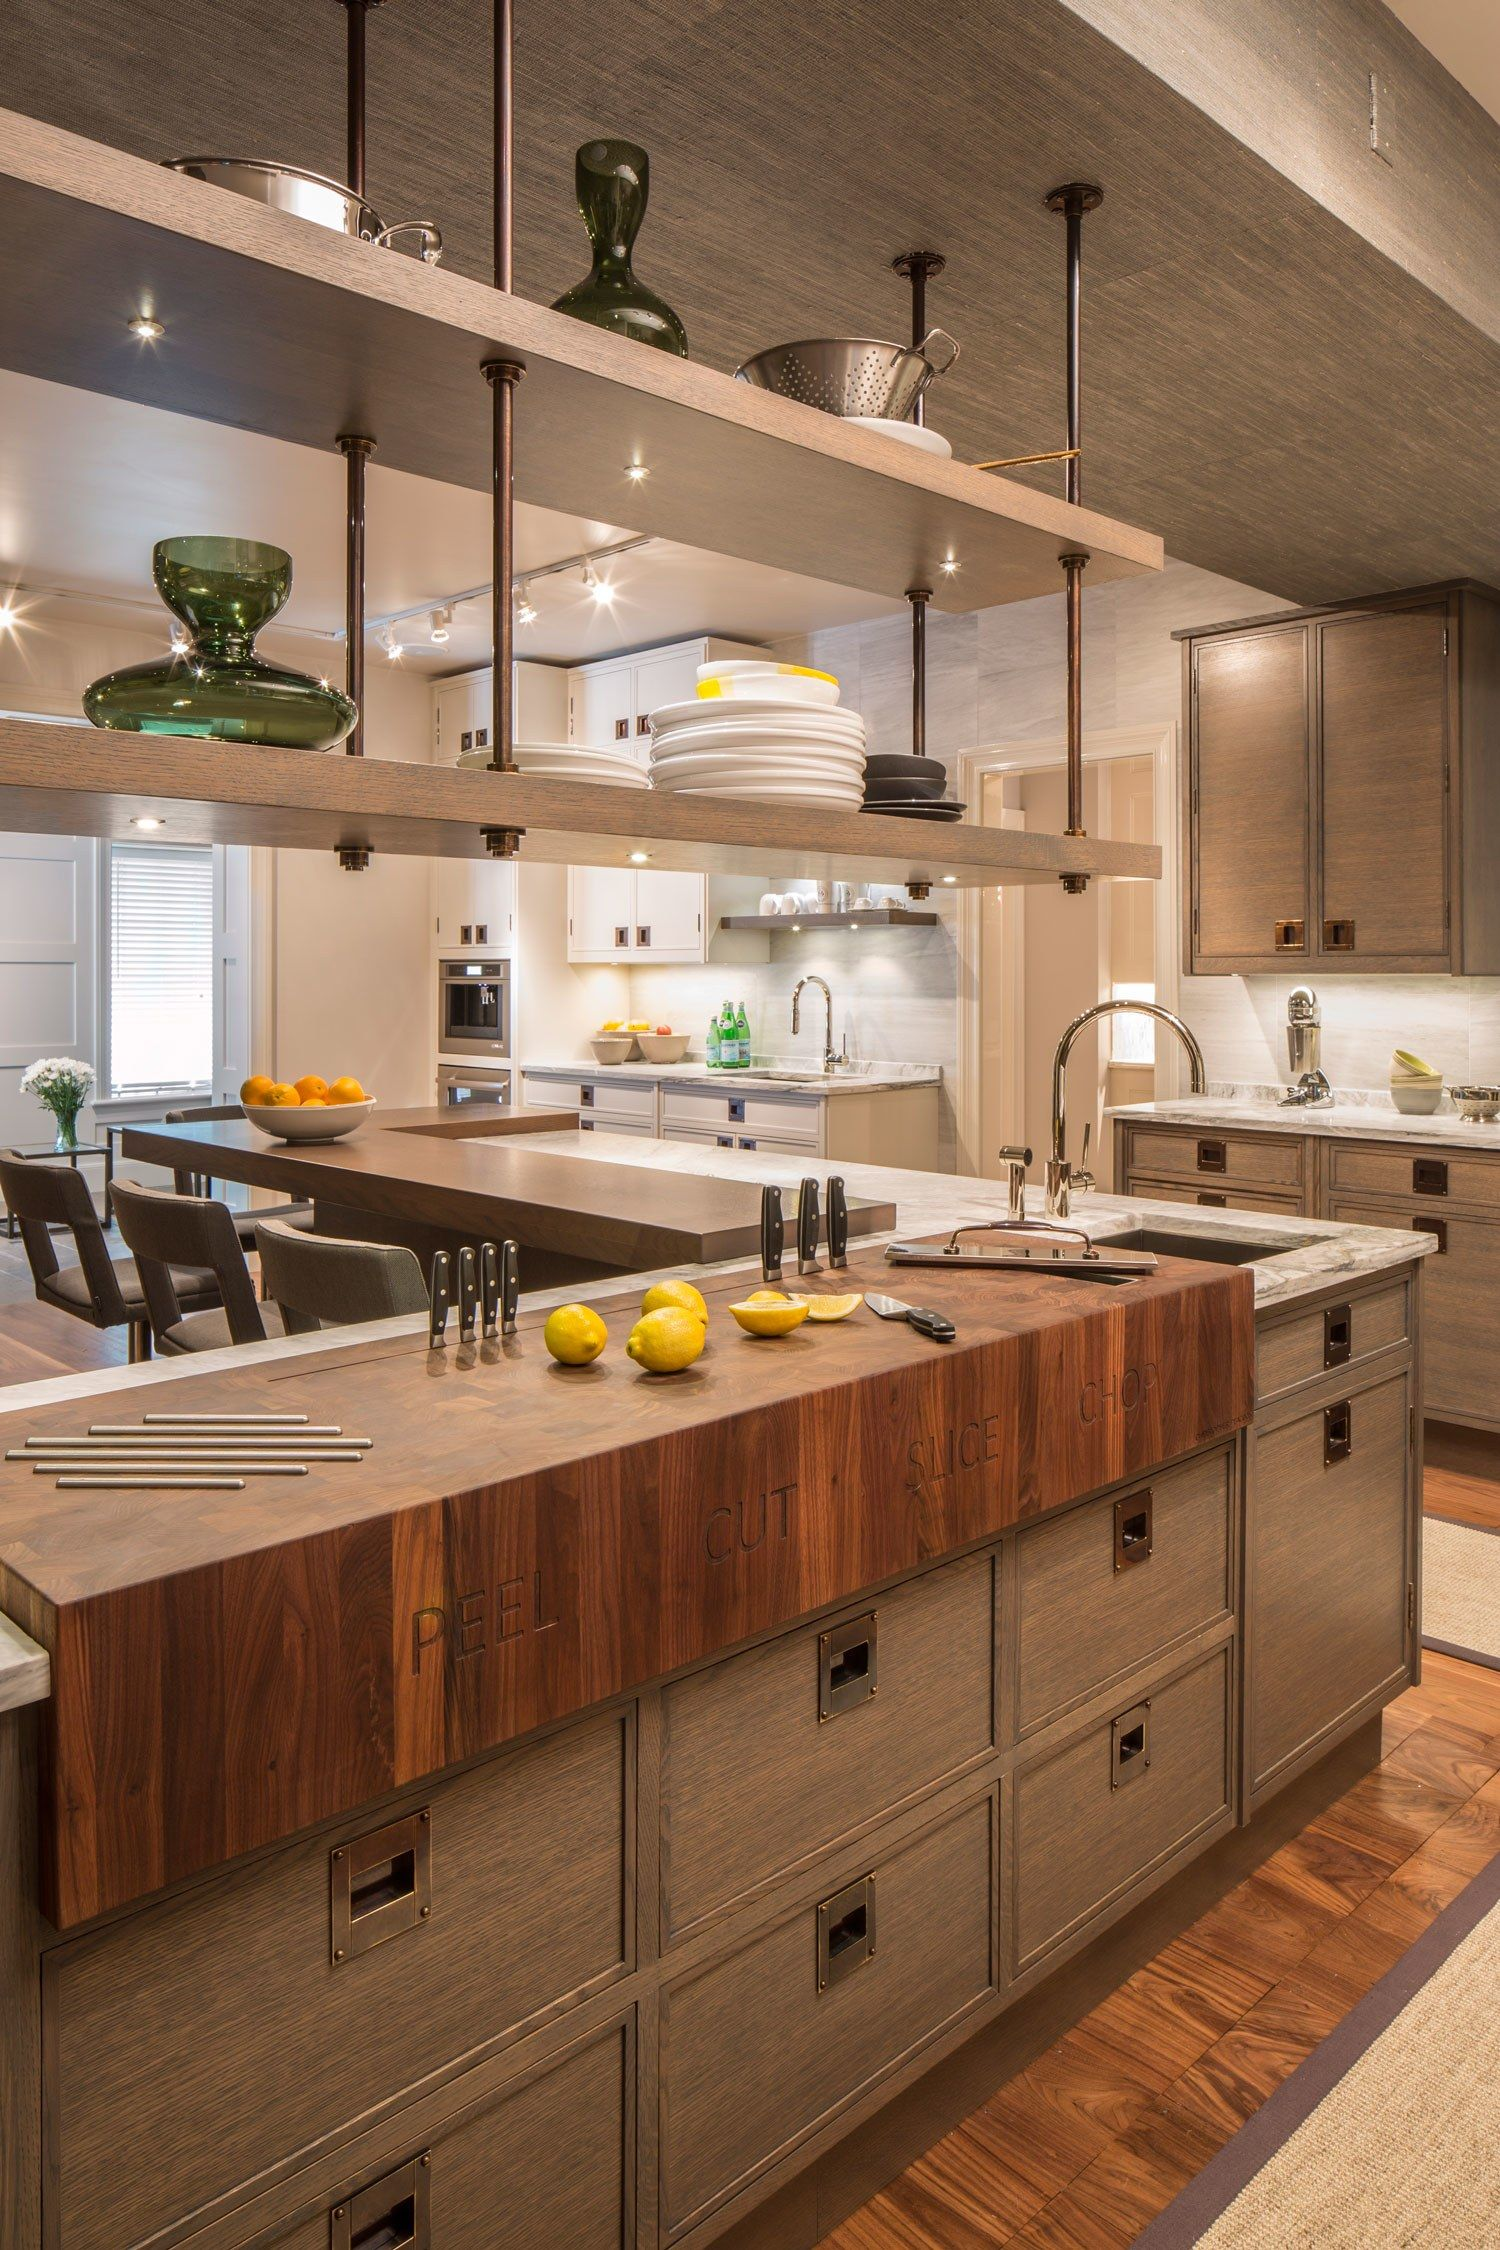 17 Convenient ReadyMade Kitchens for an Easy Home